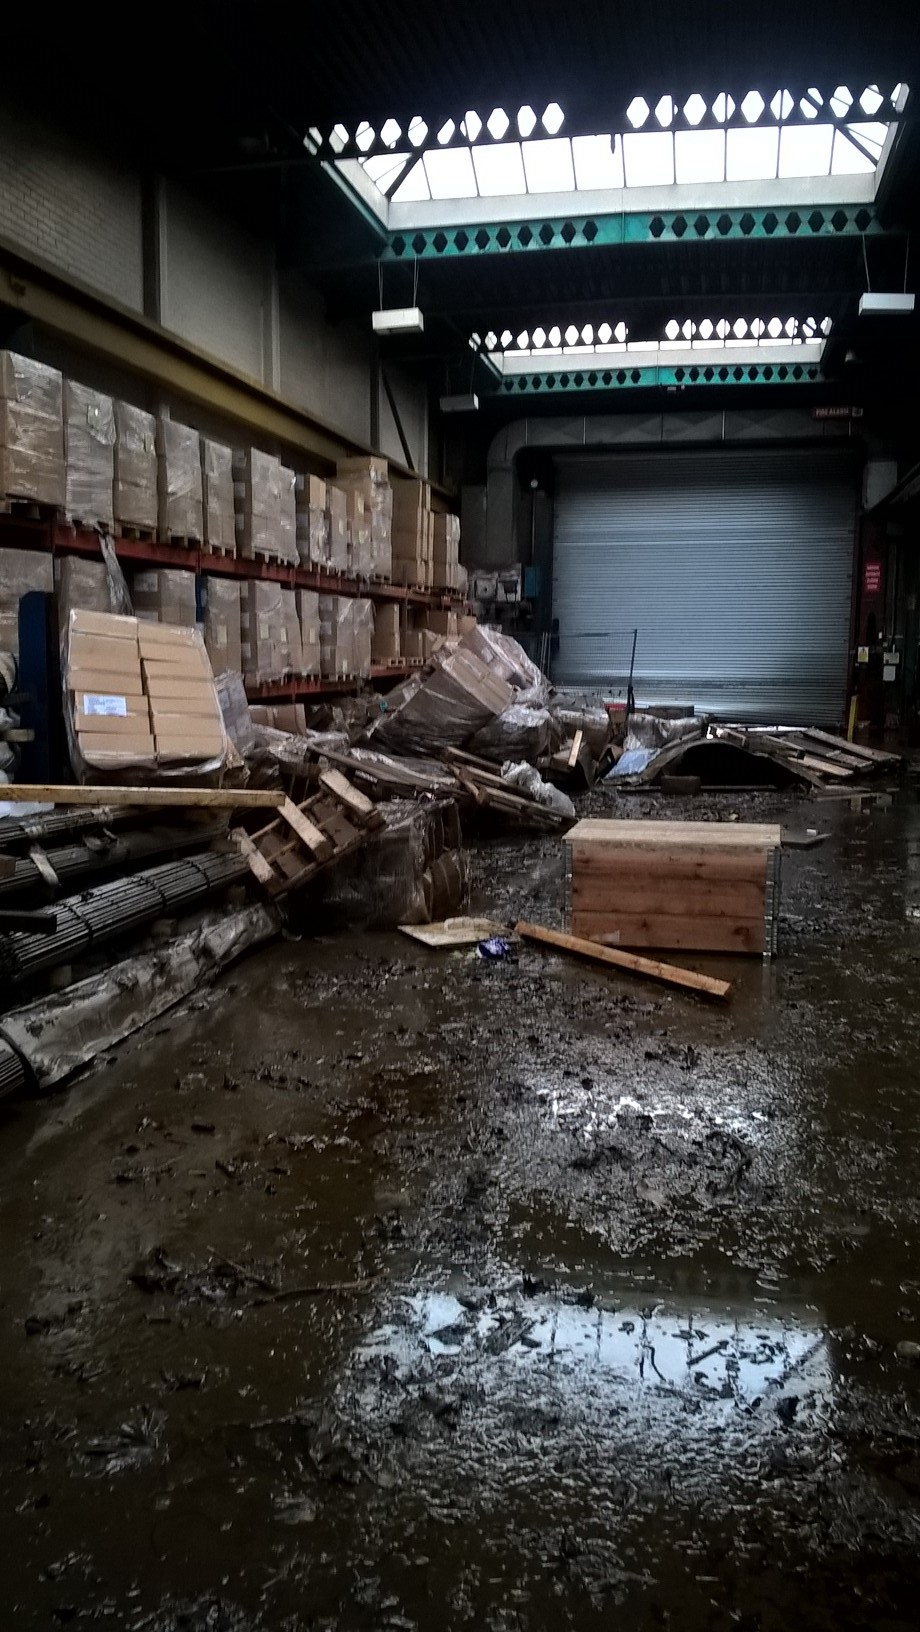 Colour photograph showing a warehouse with goods stacked up on the left hand side.  The floor is covered in thick mud and many boxes and pallets are strewn around